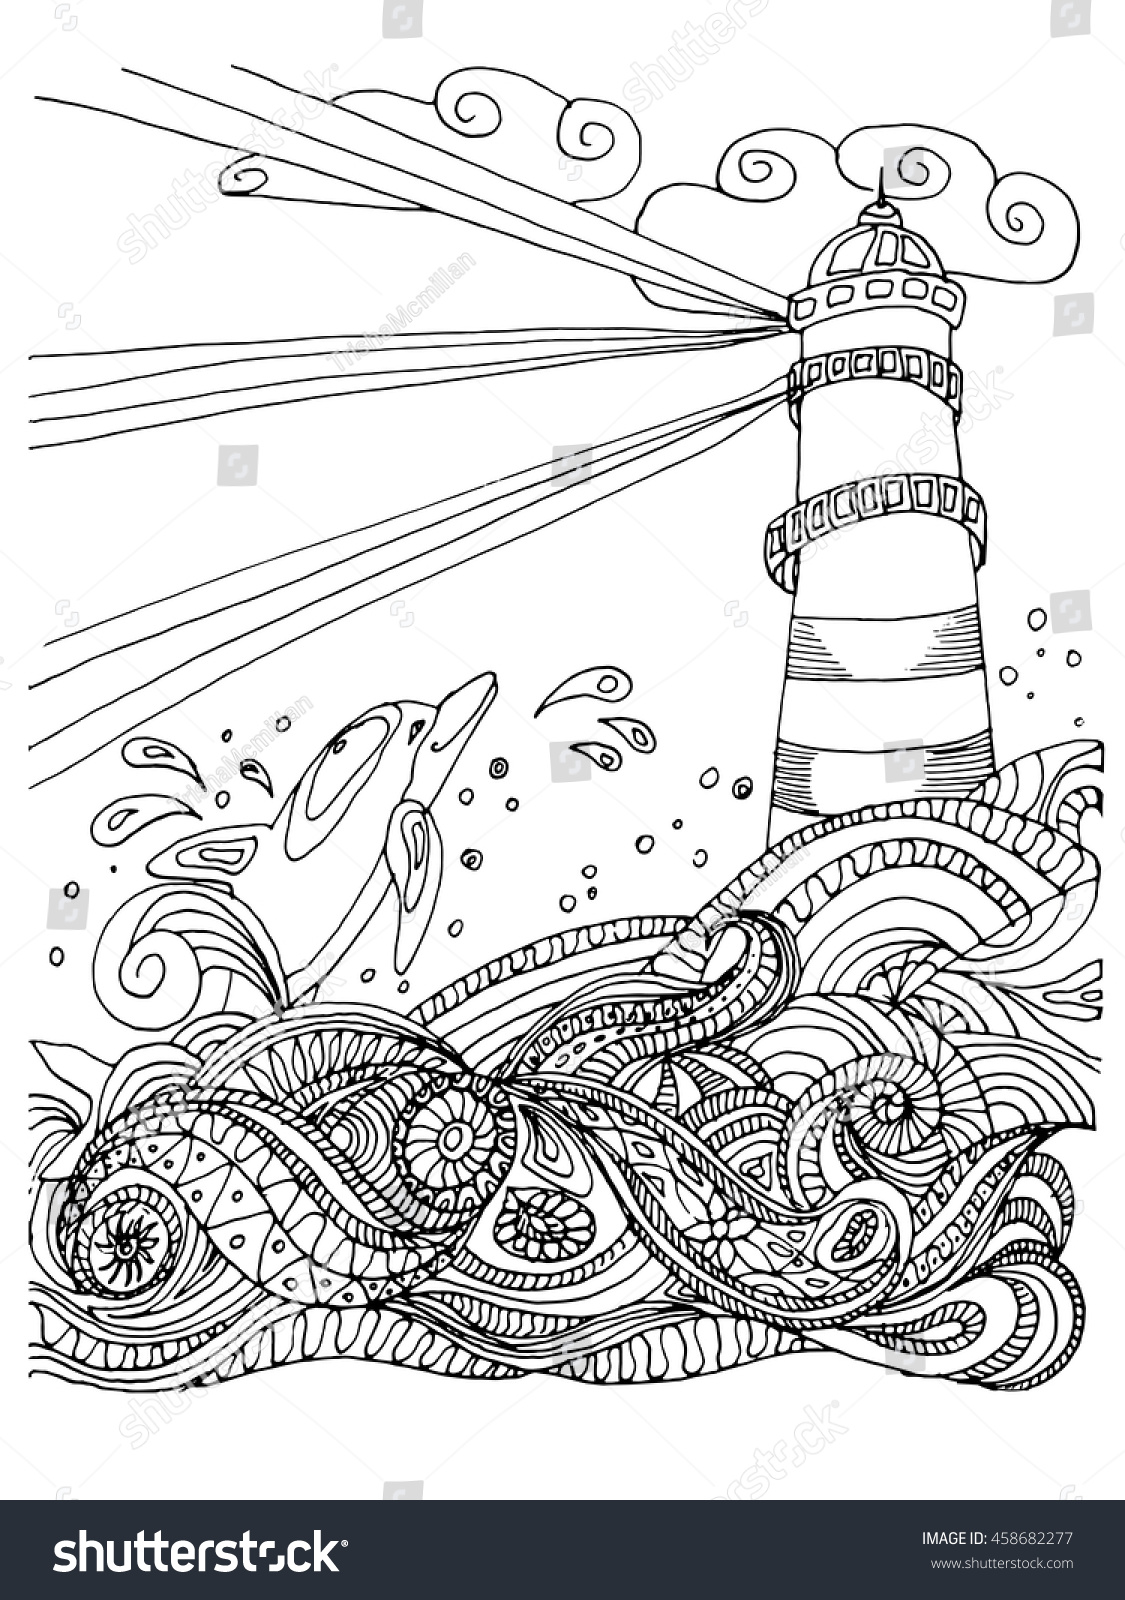 Sketch Of Light House For Coloring Book Adult Anti Stress Nautical Theme